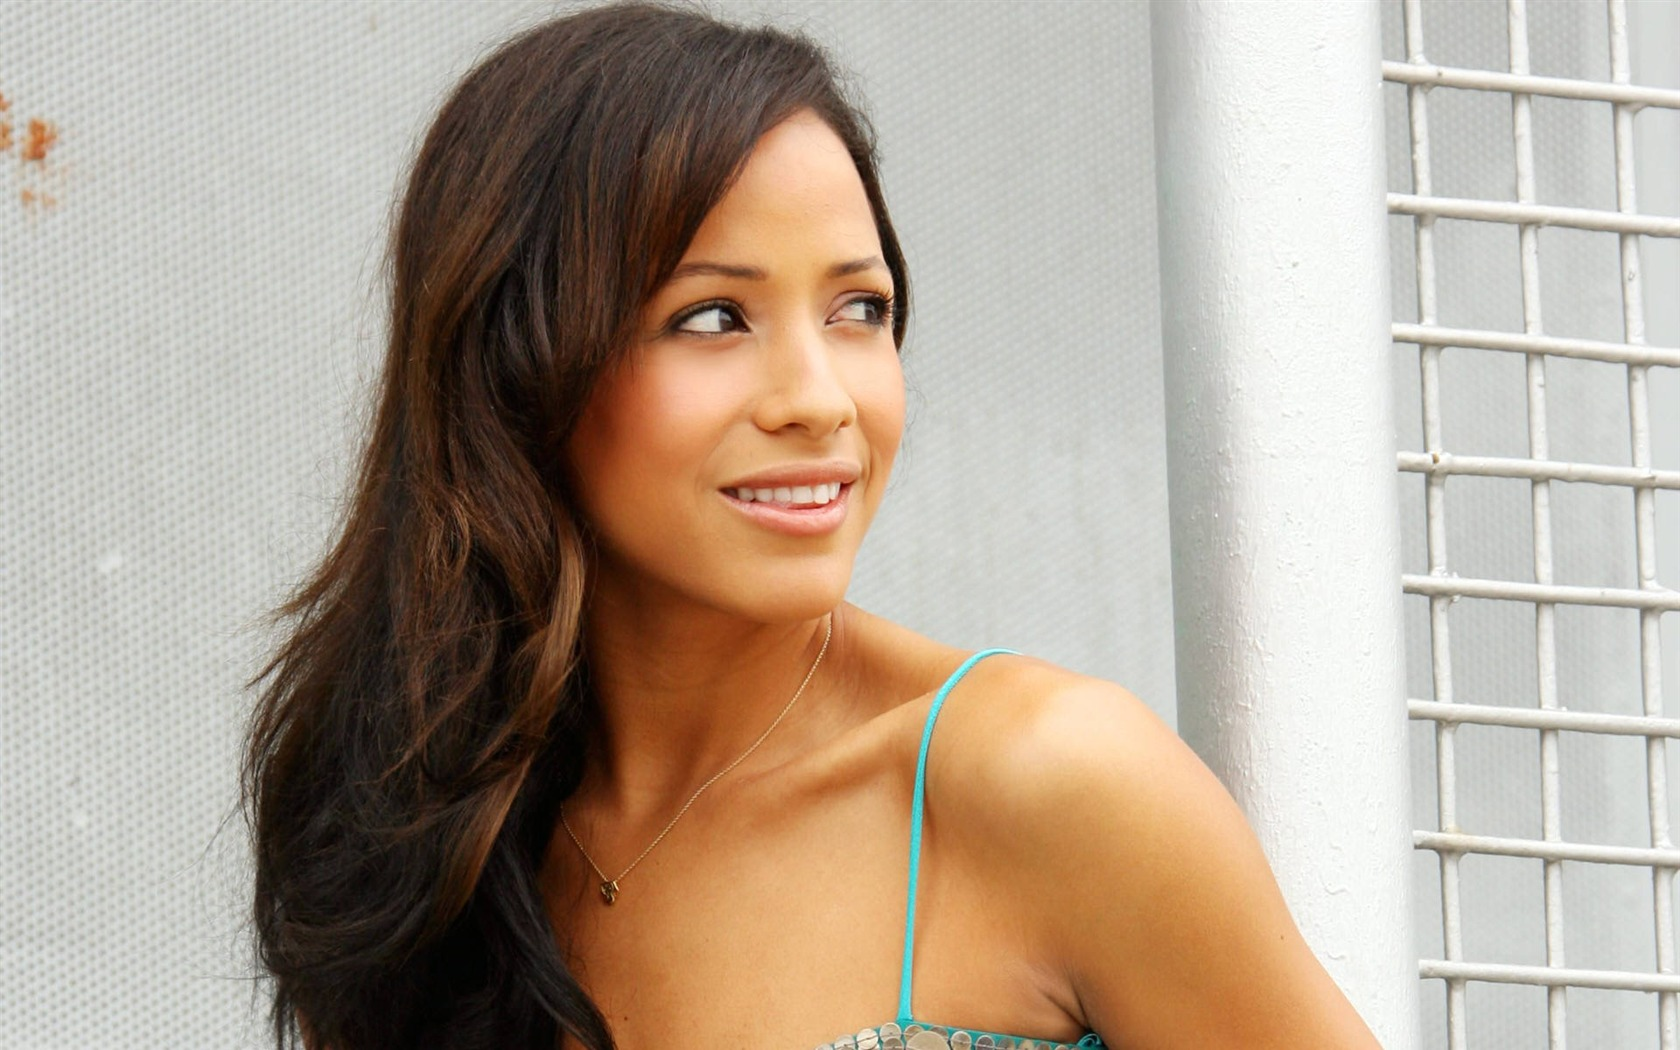 Dania Ramirez #010 - 1680x1050 Wallpapers Pictures Photos Images